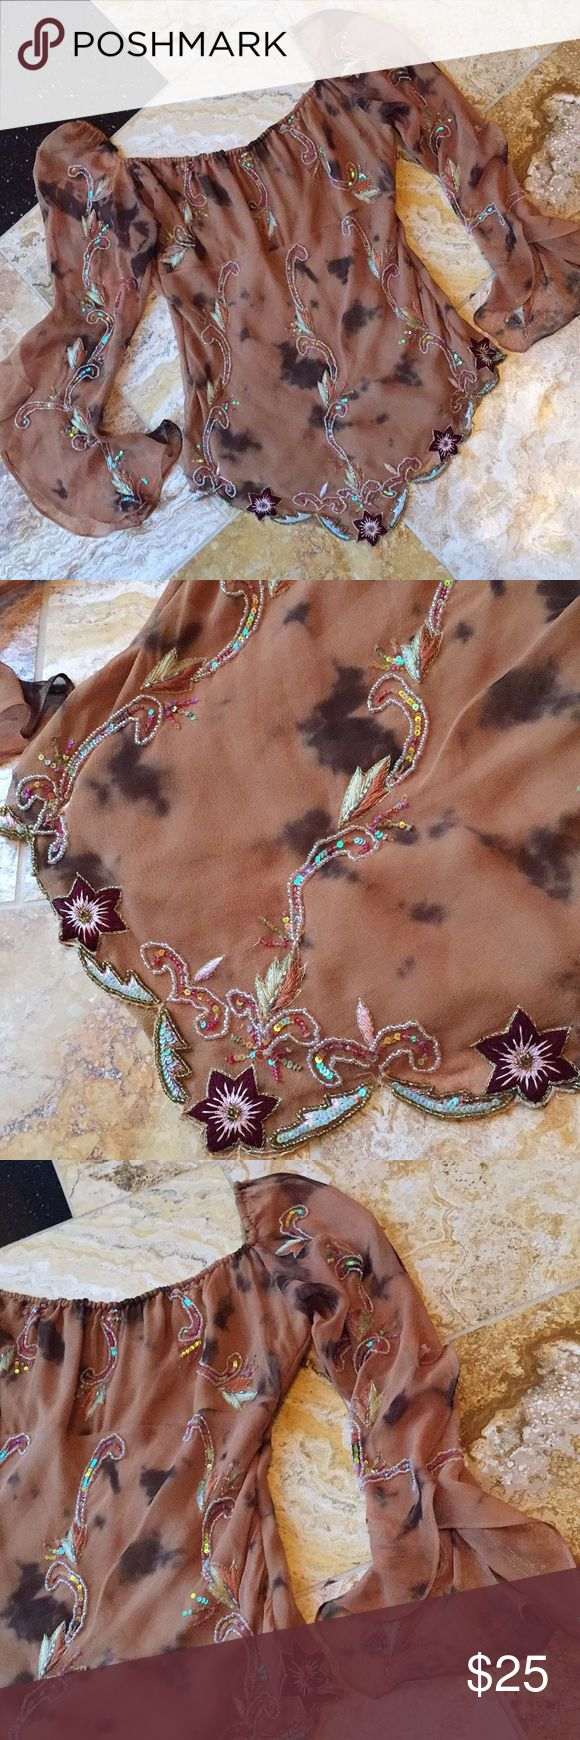 "Aftershock Caramel color silk ultrafeminine blouse The body is fully lined 100% silk in a Café au lait color with gorgeous sequins and embroidery. Scalloped hem ends in a point elongating the legs and torso, sheer sleeves open upon a soft ruffle. The ruched neckline allows for a right fit in the 17"" bust. Stunning and elegant for a night out with a skirt or just because with a pair of jeans! Aftershock Tops"